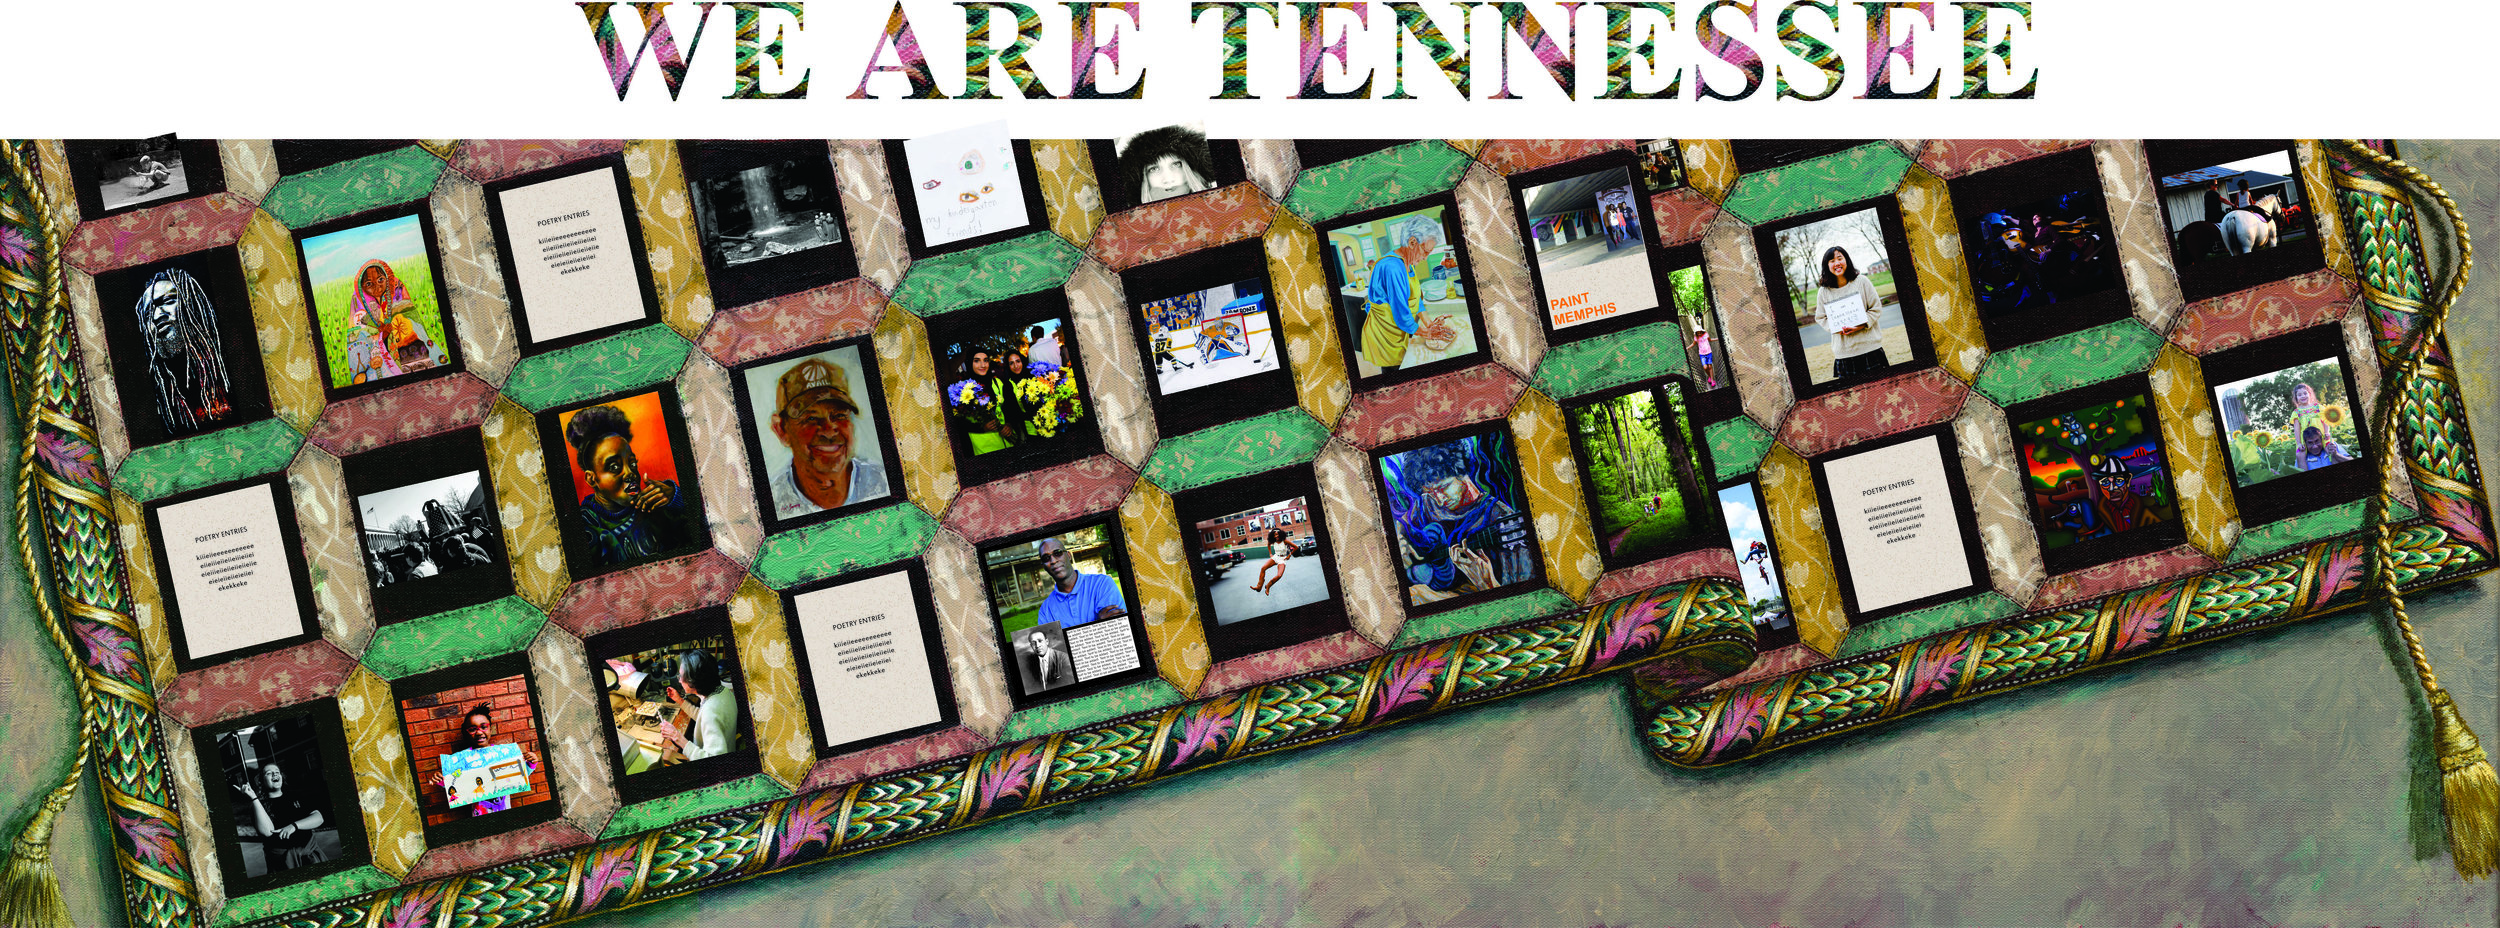 At the Discovery Center at Murfree Springs. 502 NW Broad St., Murfreesboro, TN. New exhibit opens this day. Visit the Discovery Center 2nd floor any open museum day to see Tennessee artist submissions displaying the cultural diversity of our state.